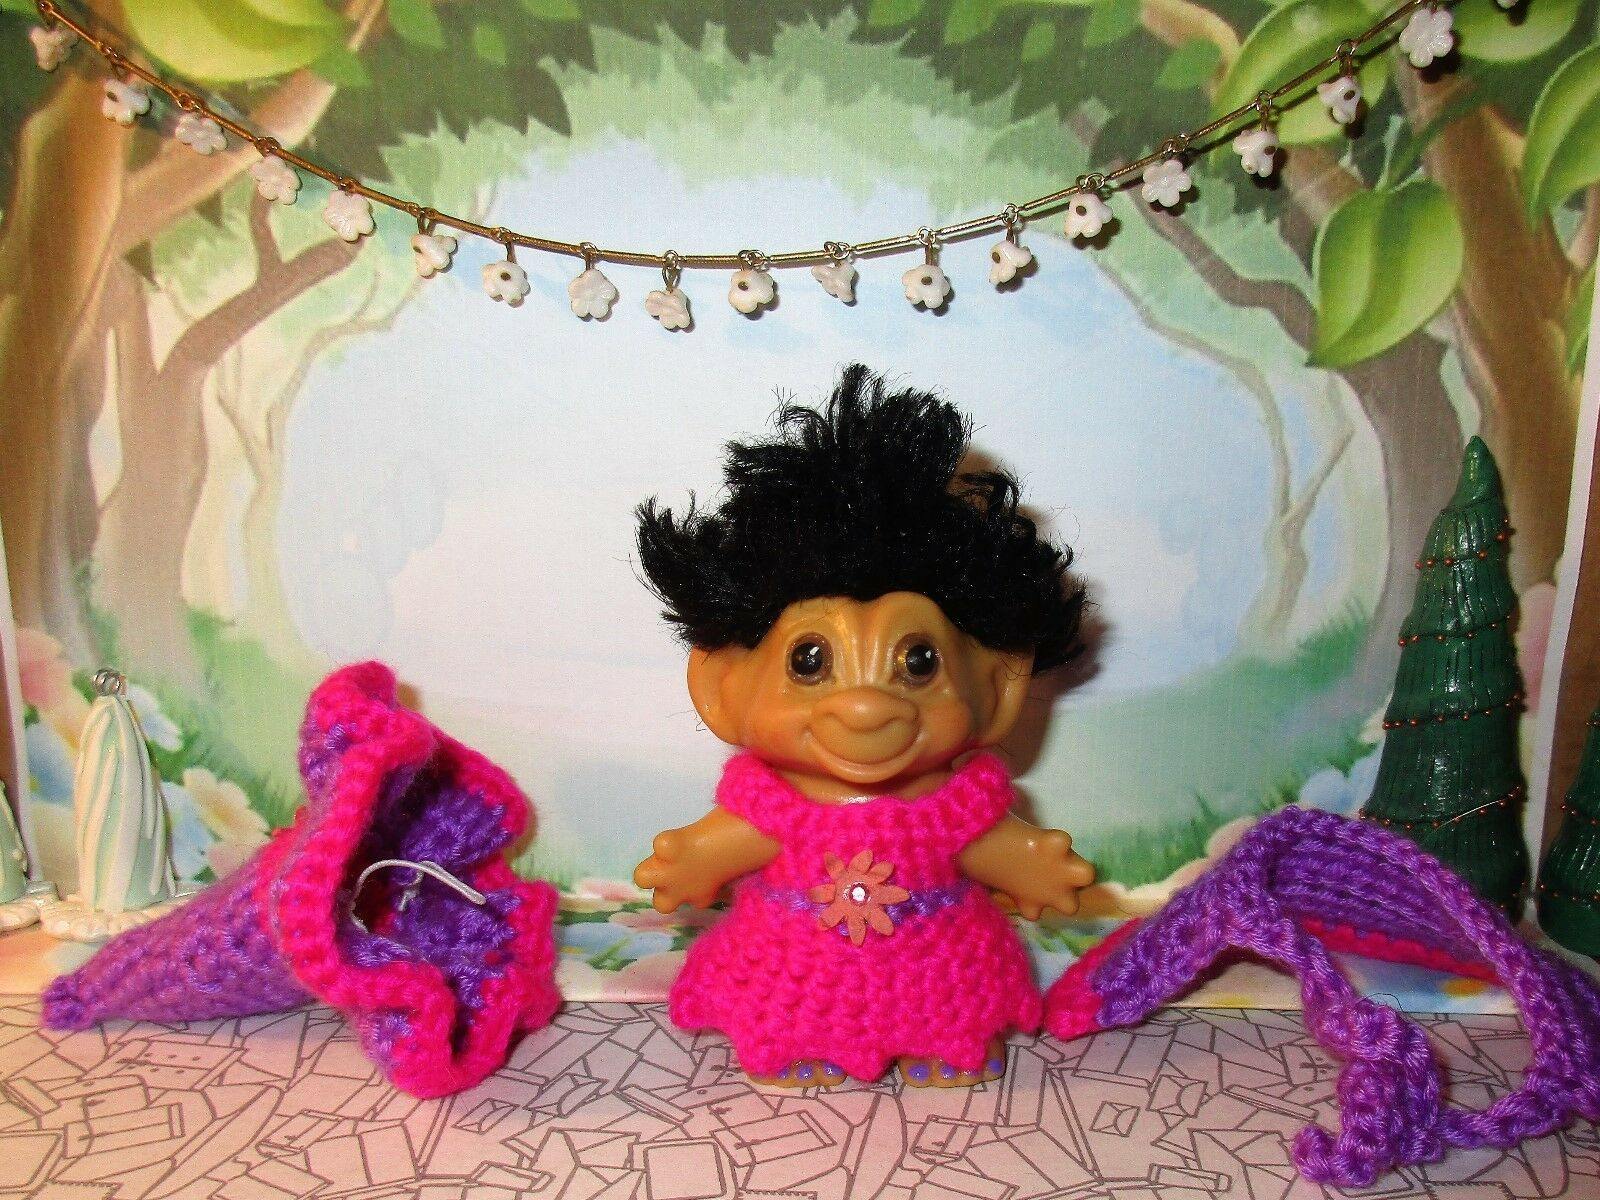 SPRING WITCH TROLL 3 inch crochet dress hat cape panties tab dam doll pink 60's image 2